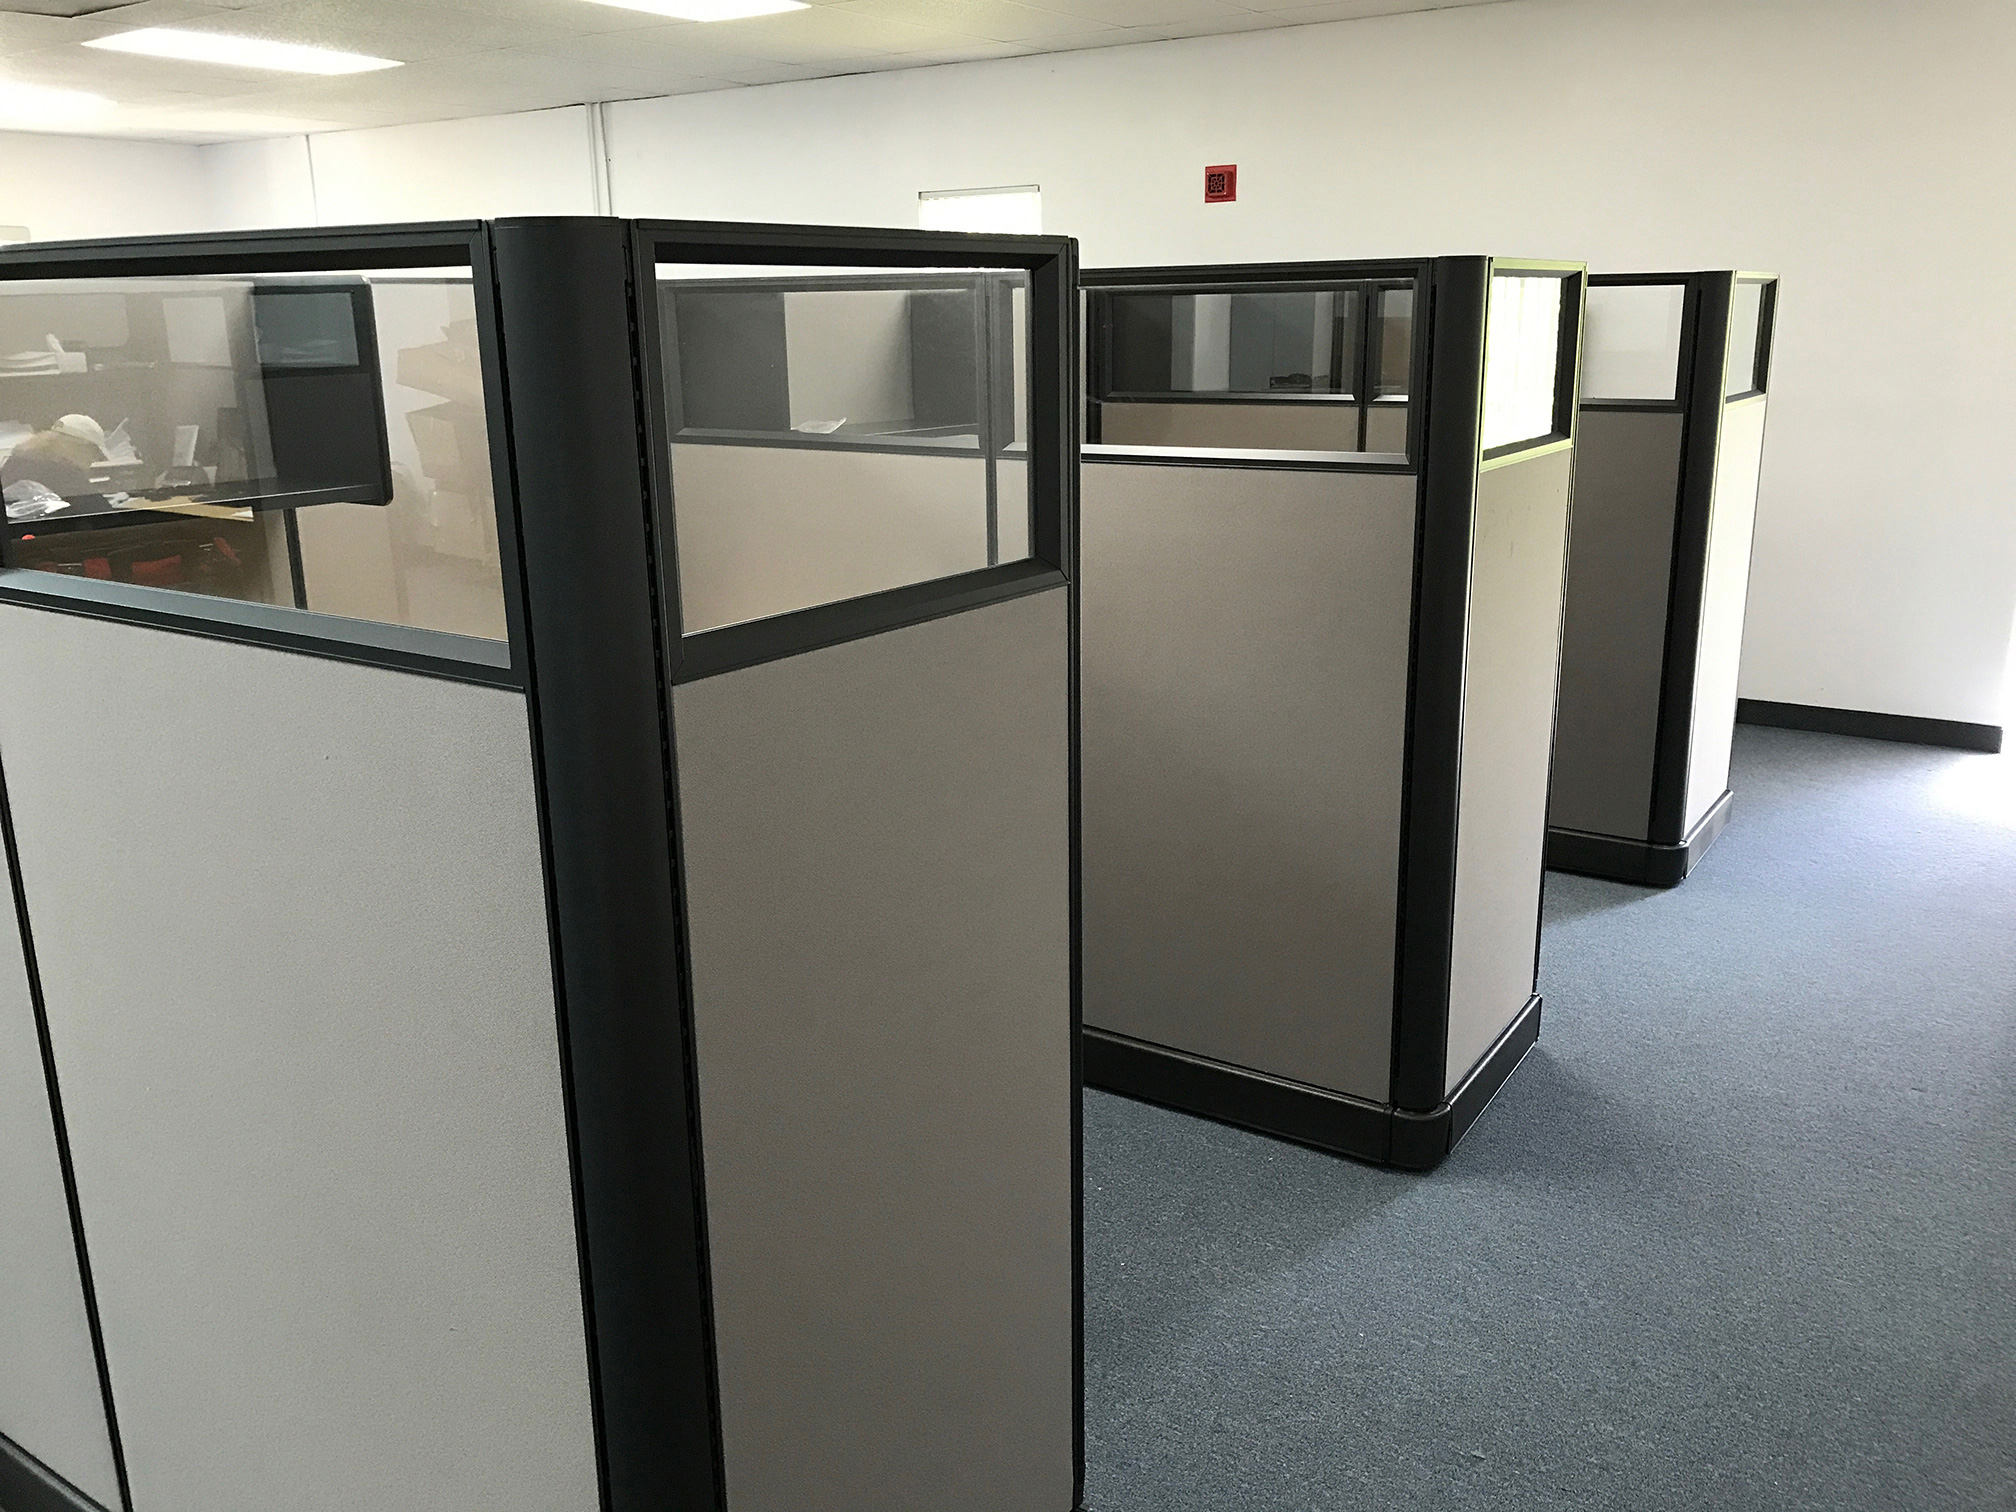 office-cubicles-for-sale-in-fort-walton-beach-florida-3-1.jpg